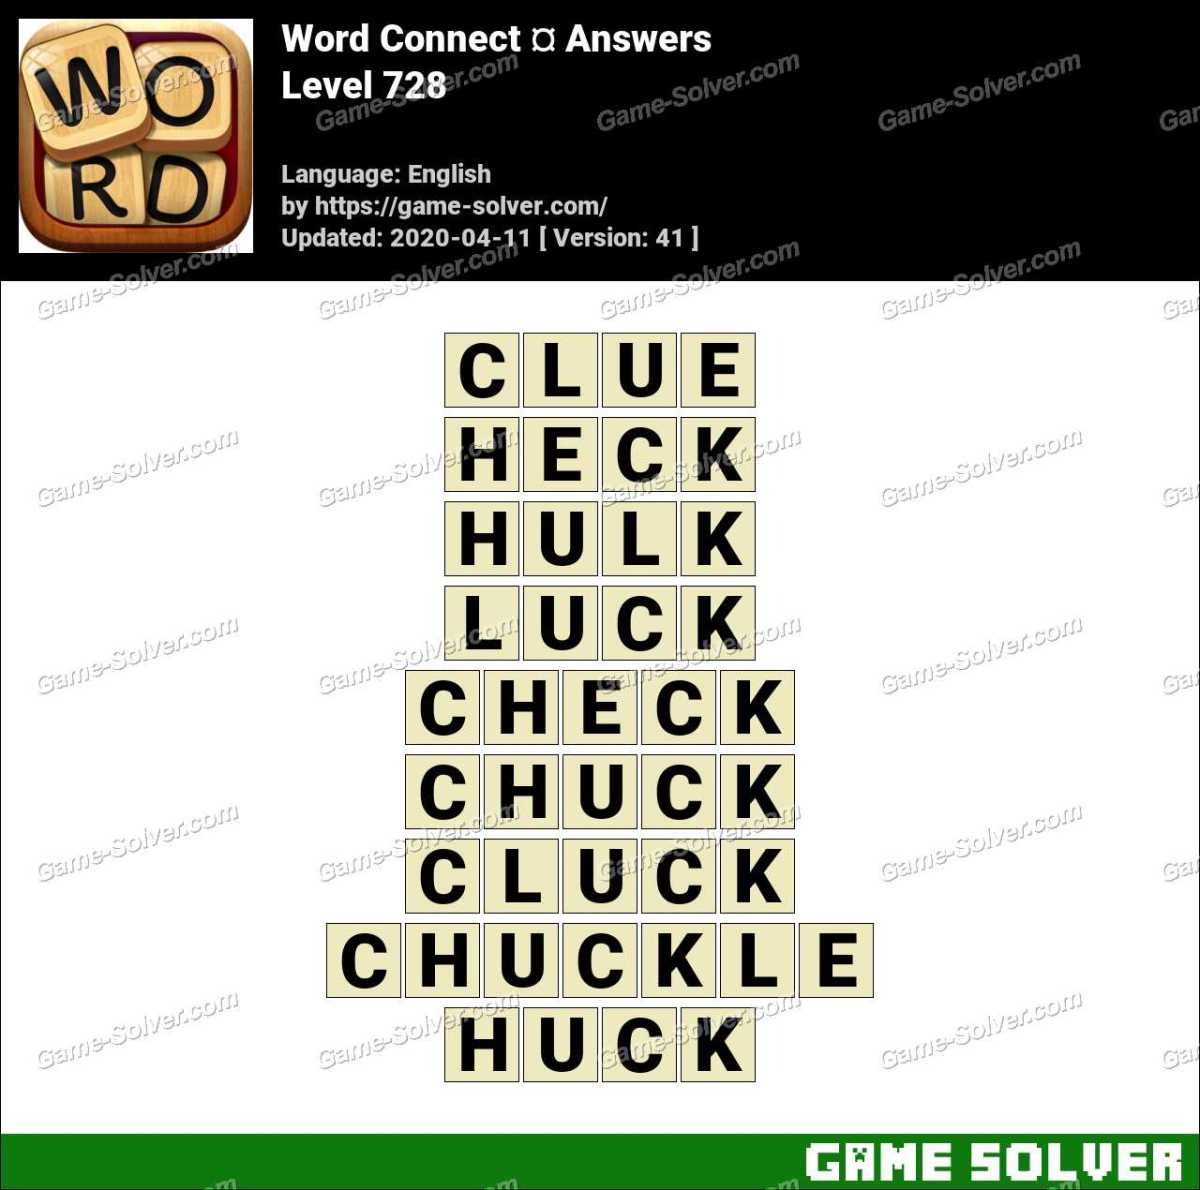 Word Connect Level 728 Answers